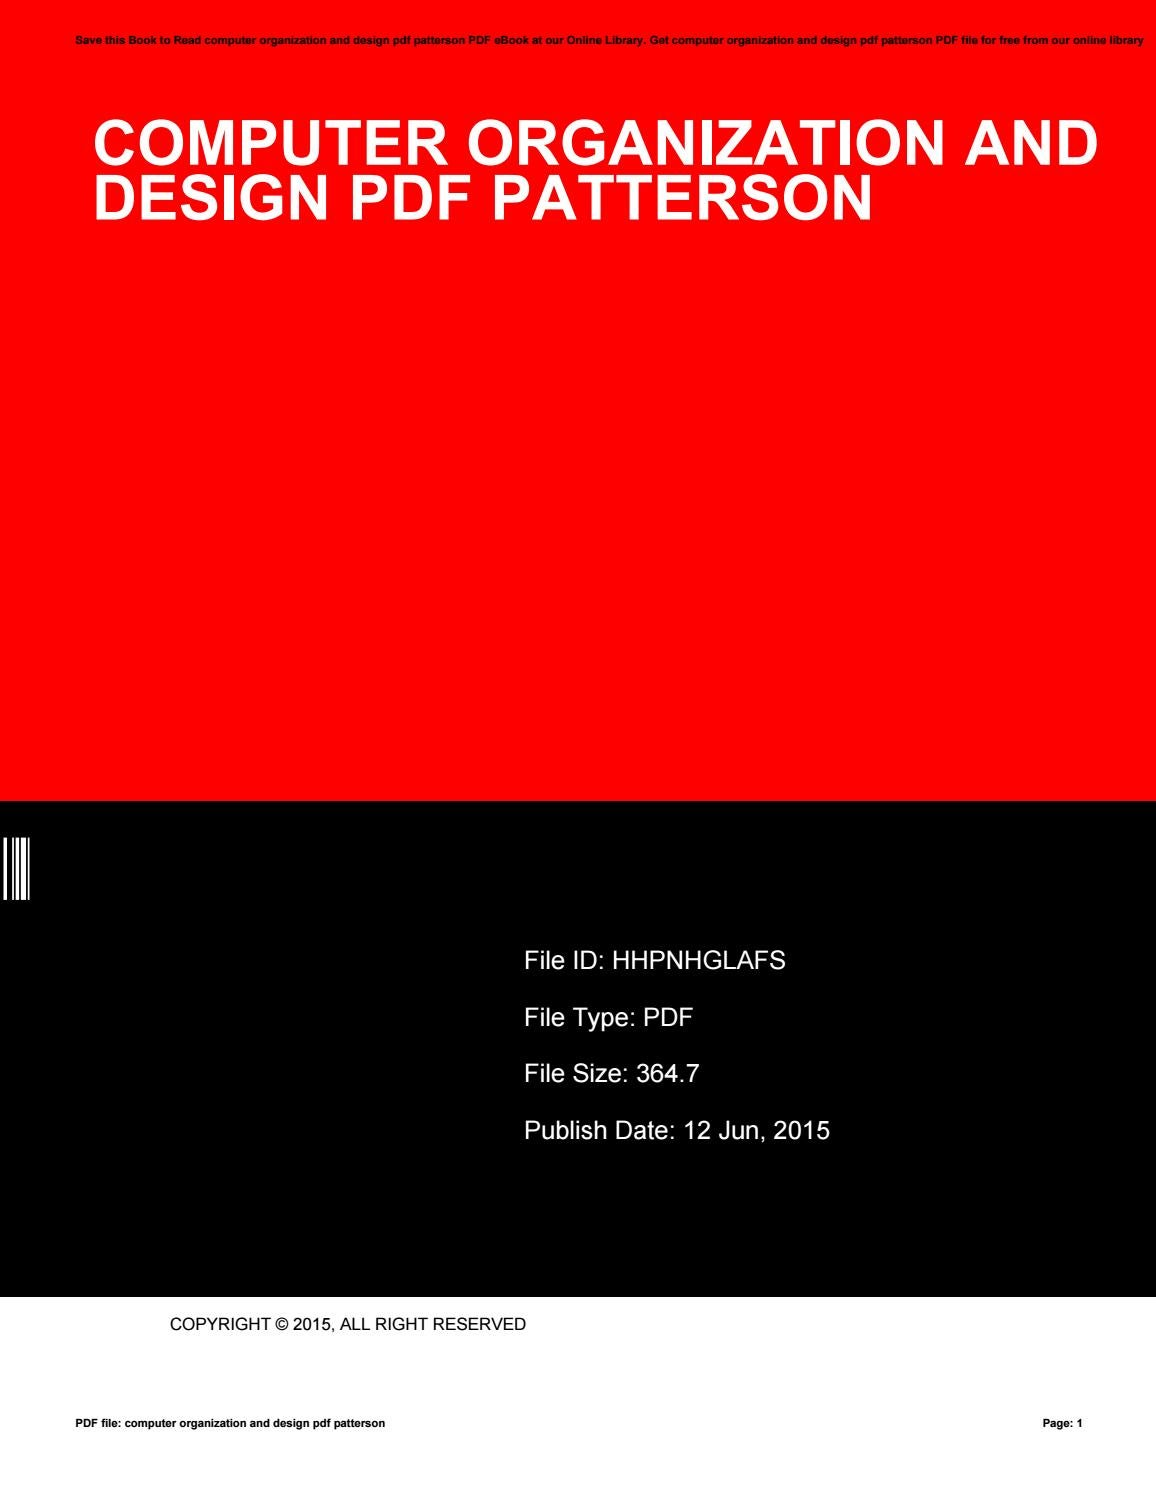 Computer Organization And Design Pdf Patterson By Adrianjohn3394 Issuu